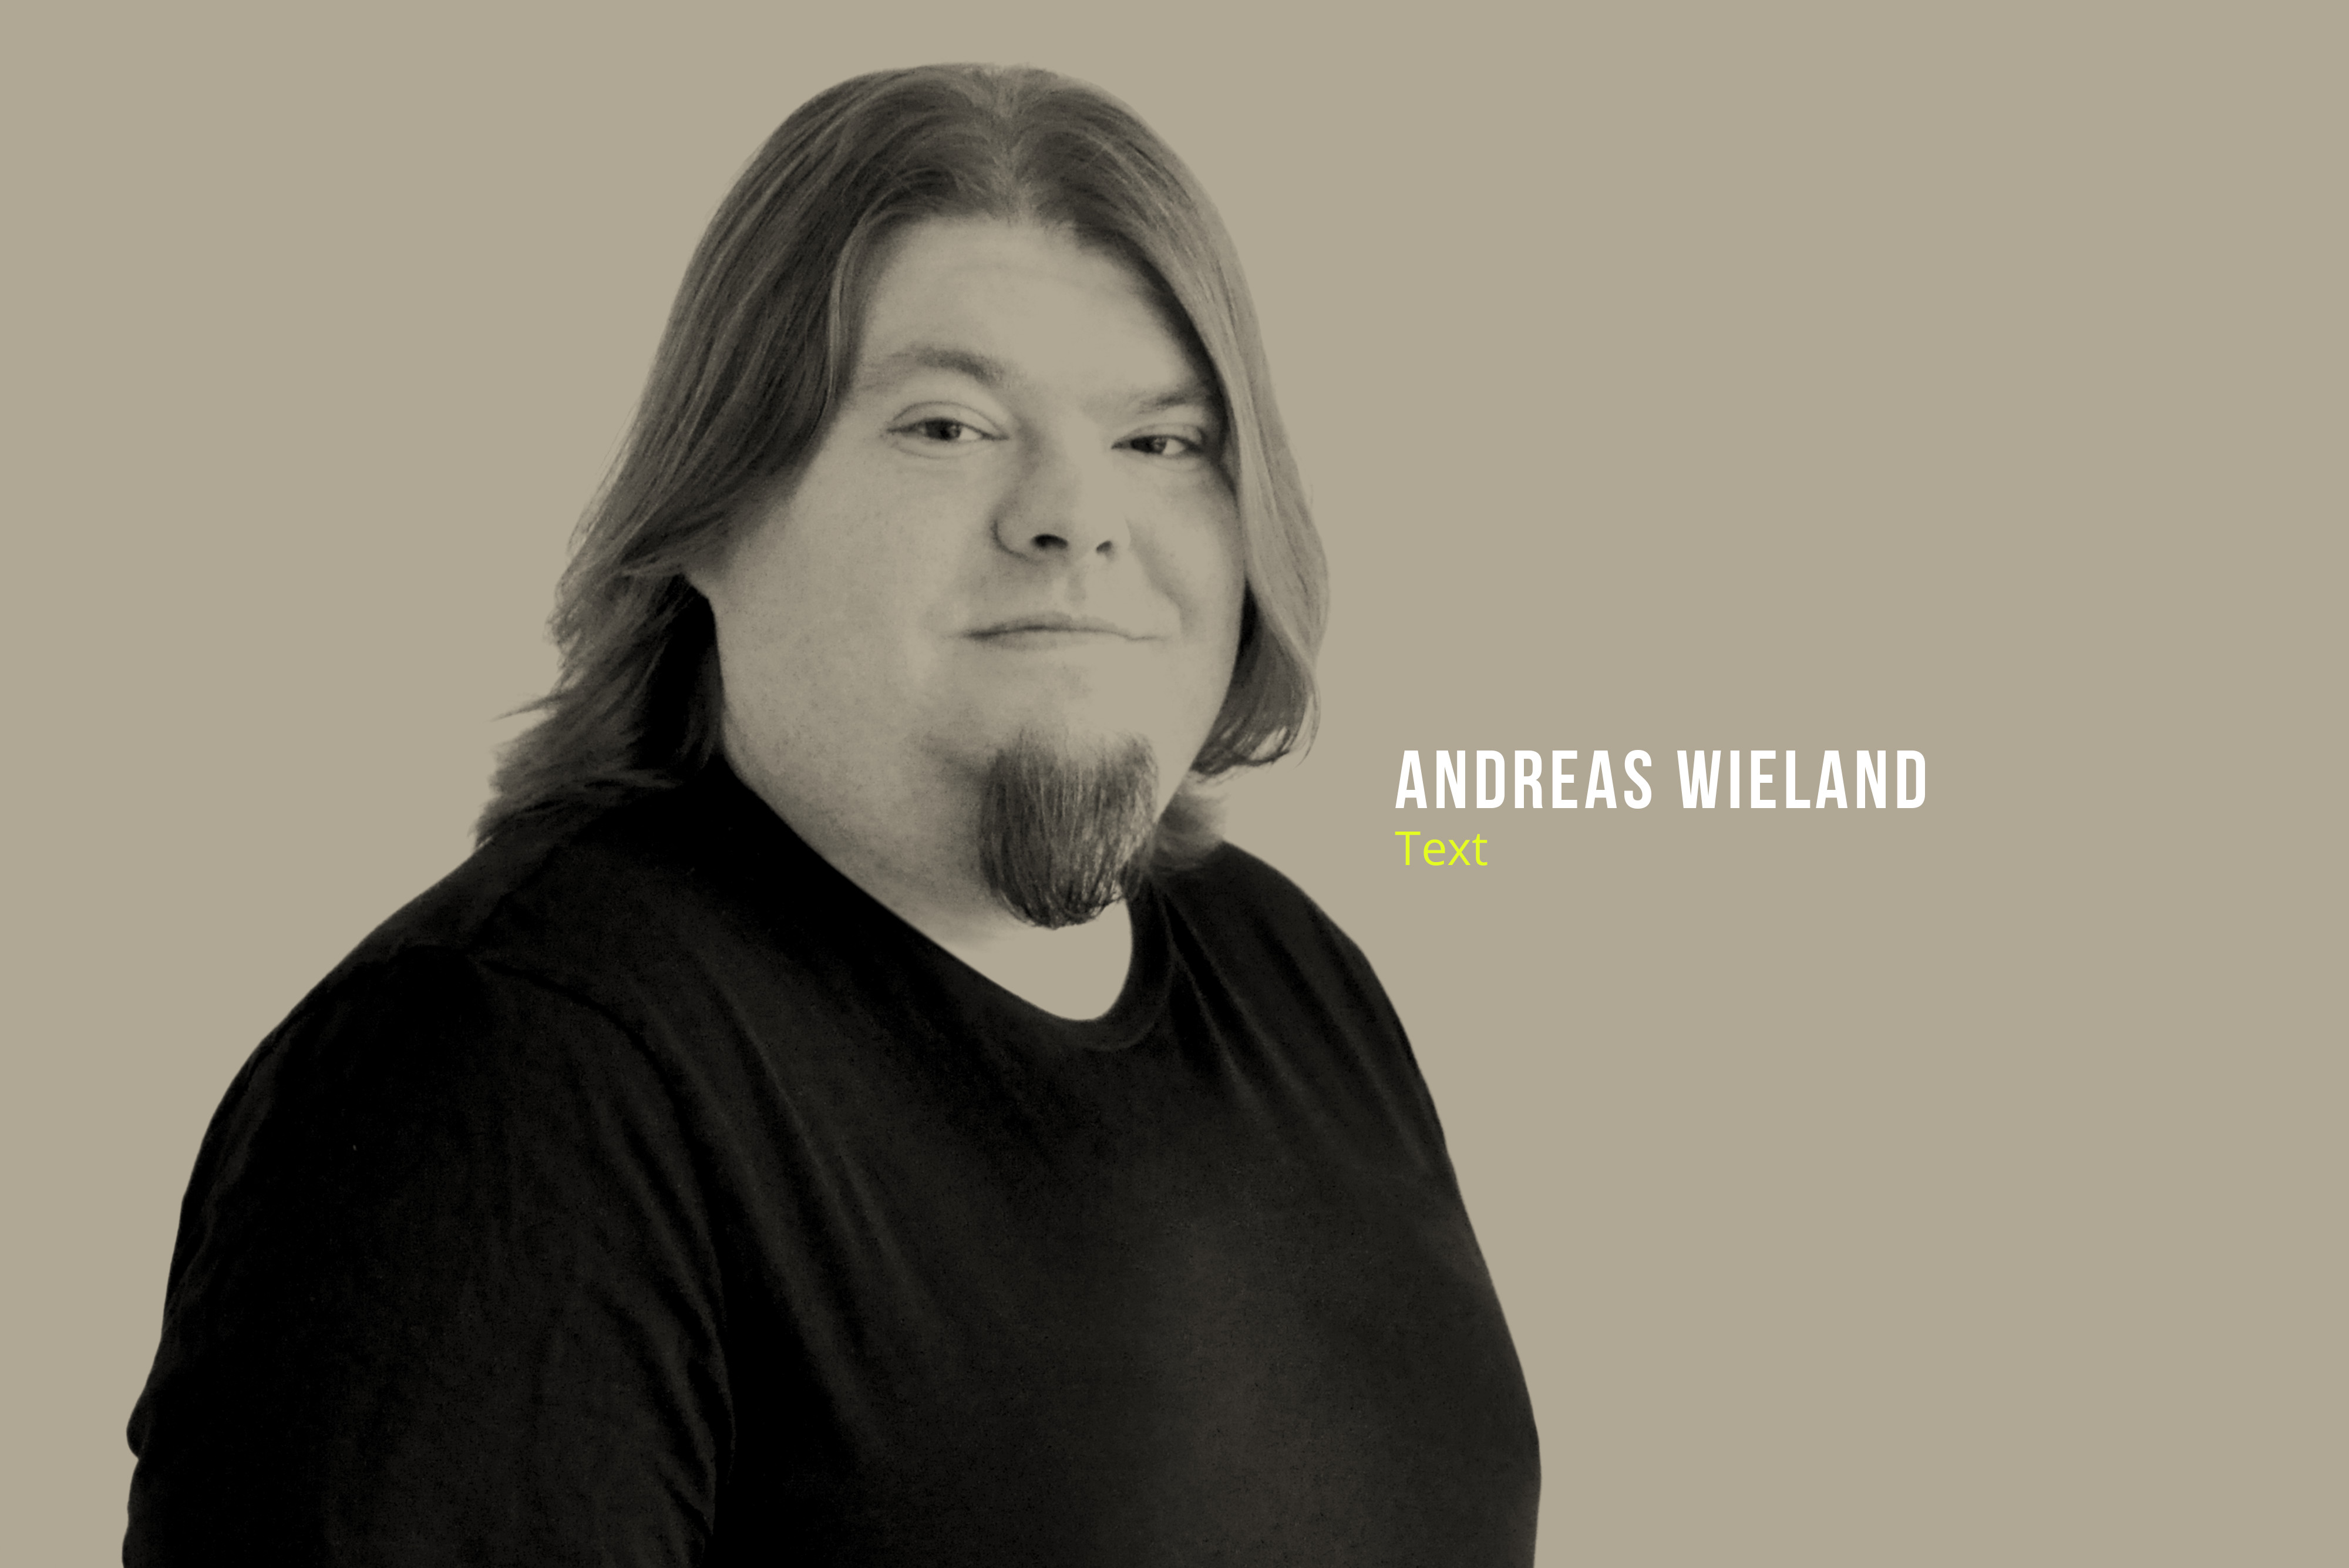 Andreas Wieland Text